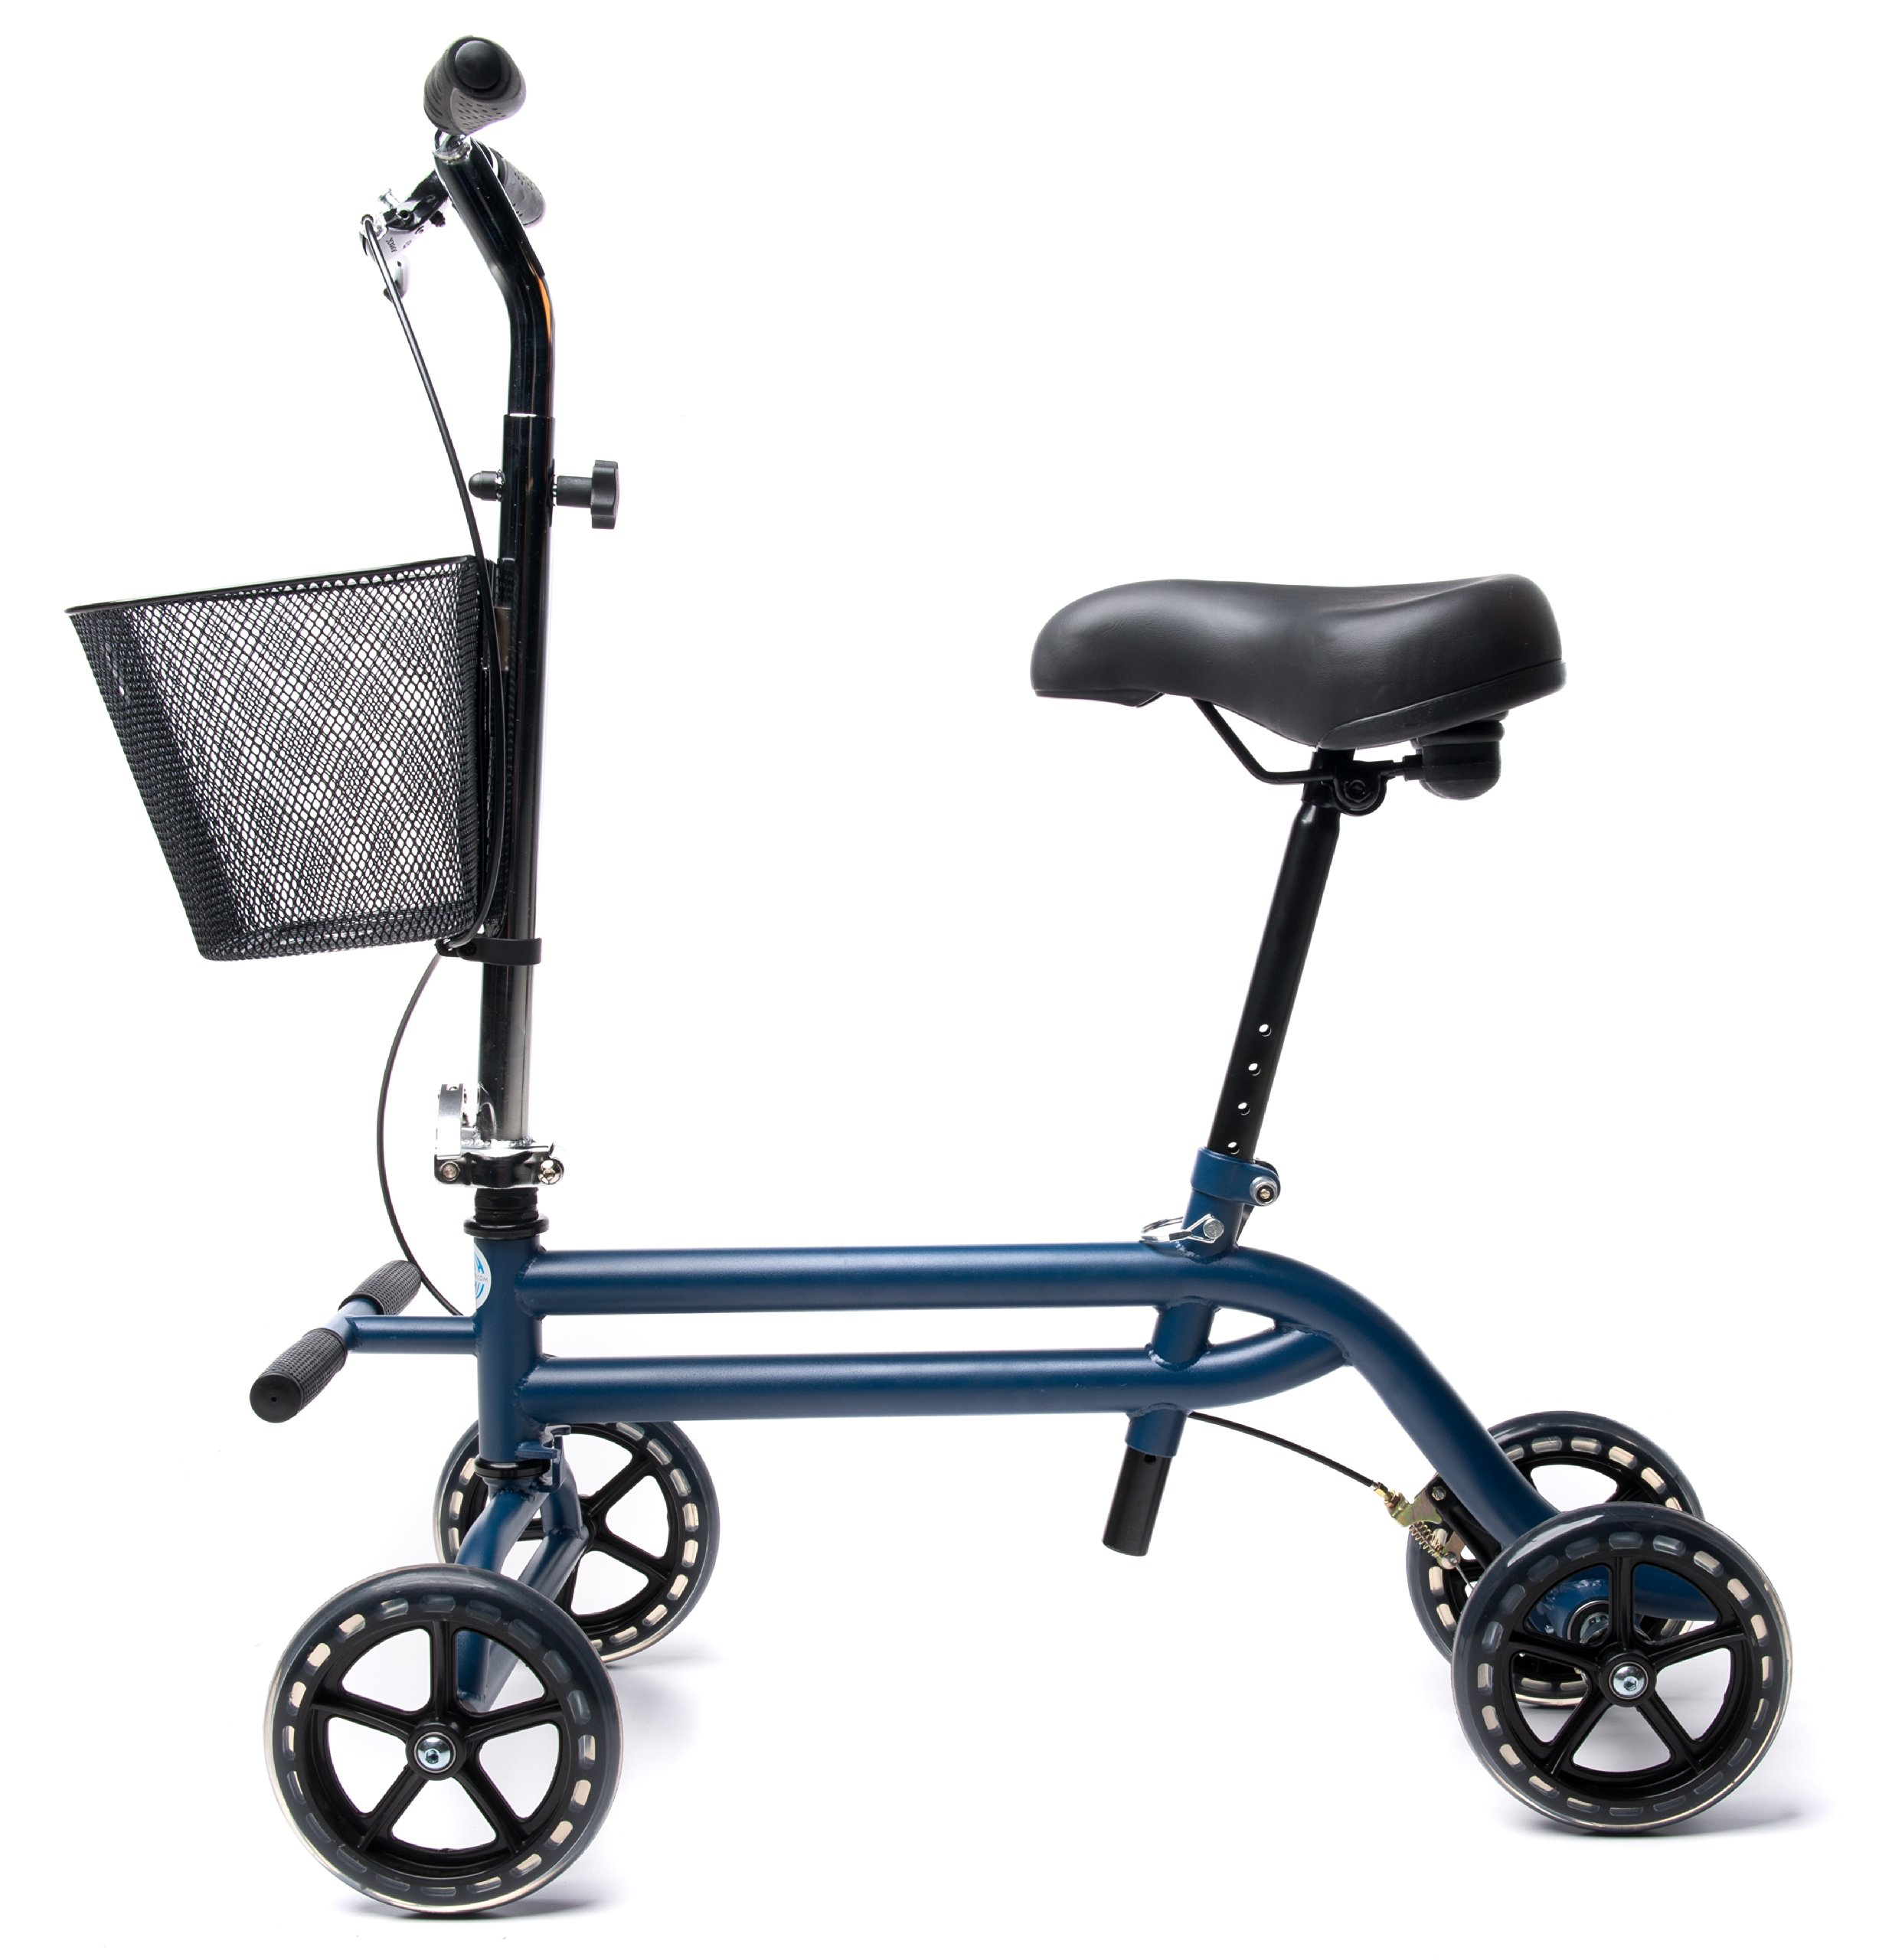 Evolution Steerable Seated Scooter Mobility Knee Walker Turning Leg Walker Crutches Alternative in Blue by KneeRover